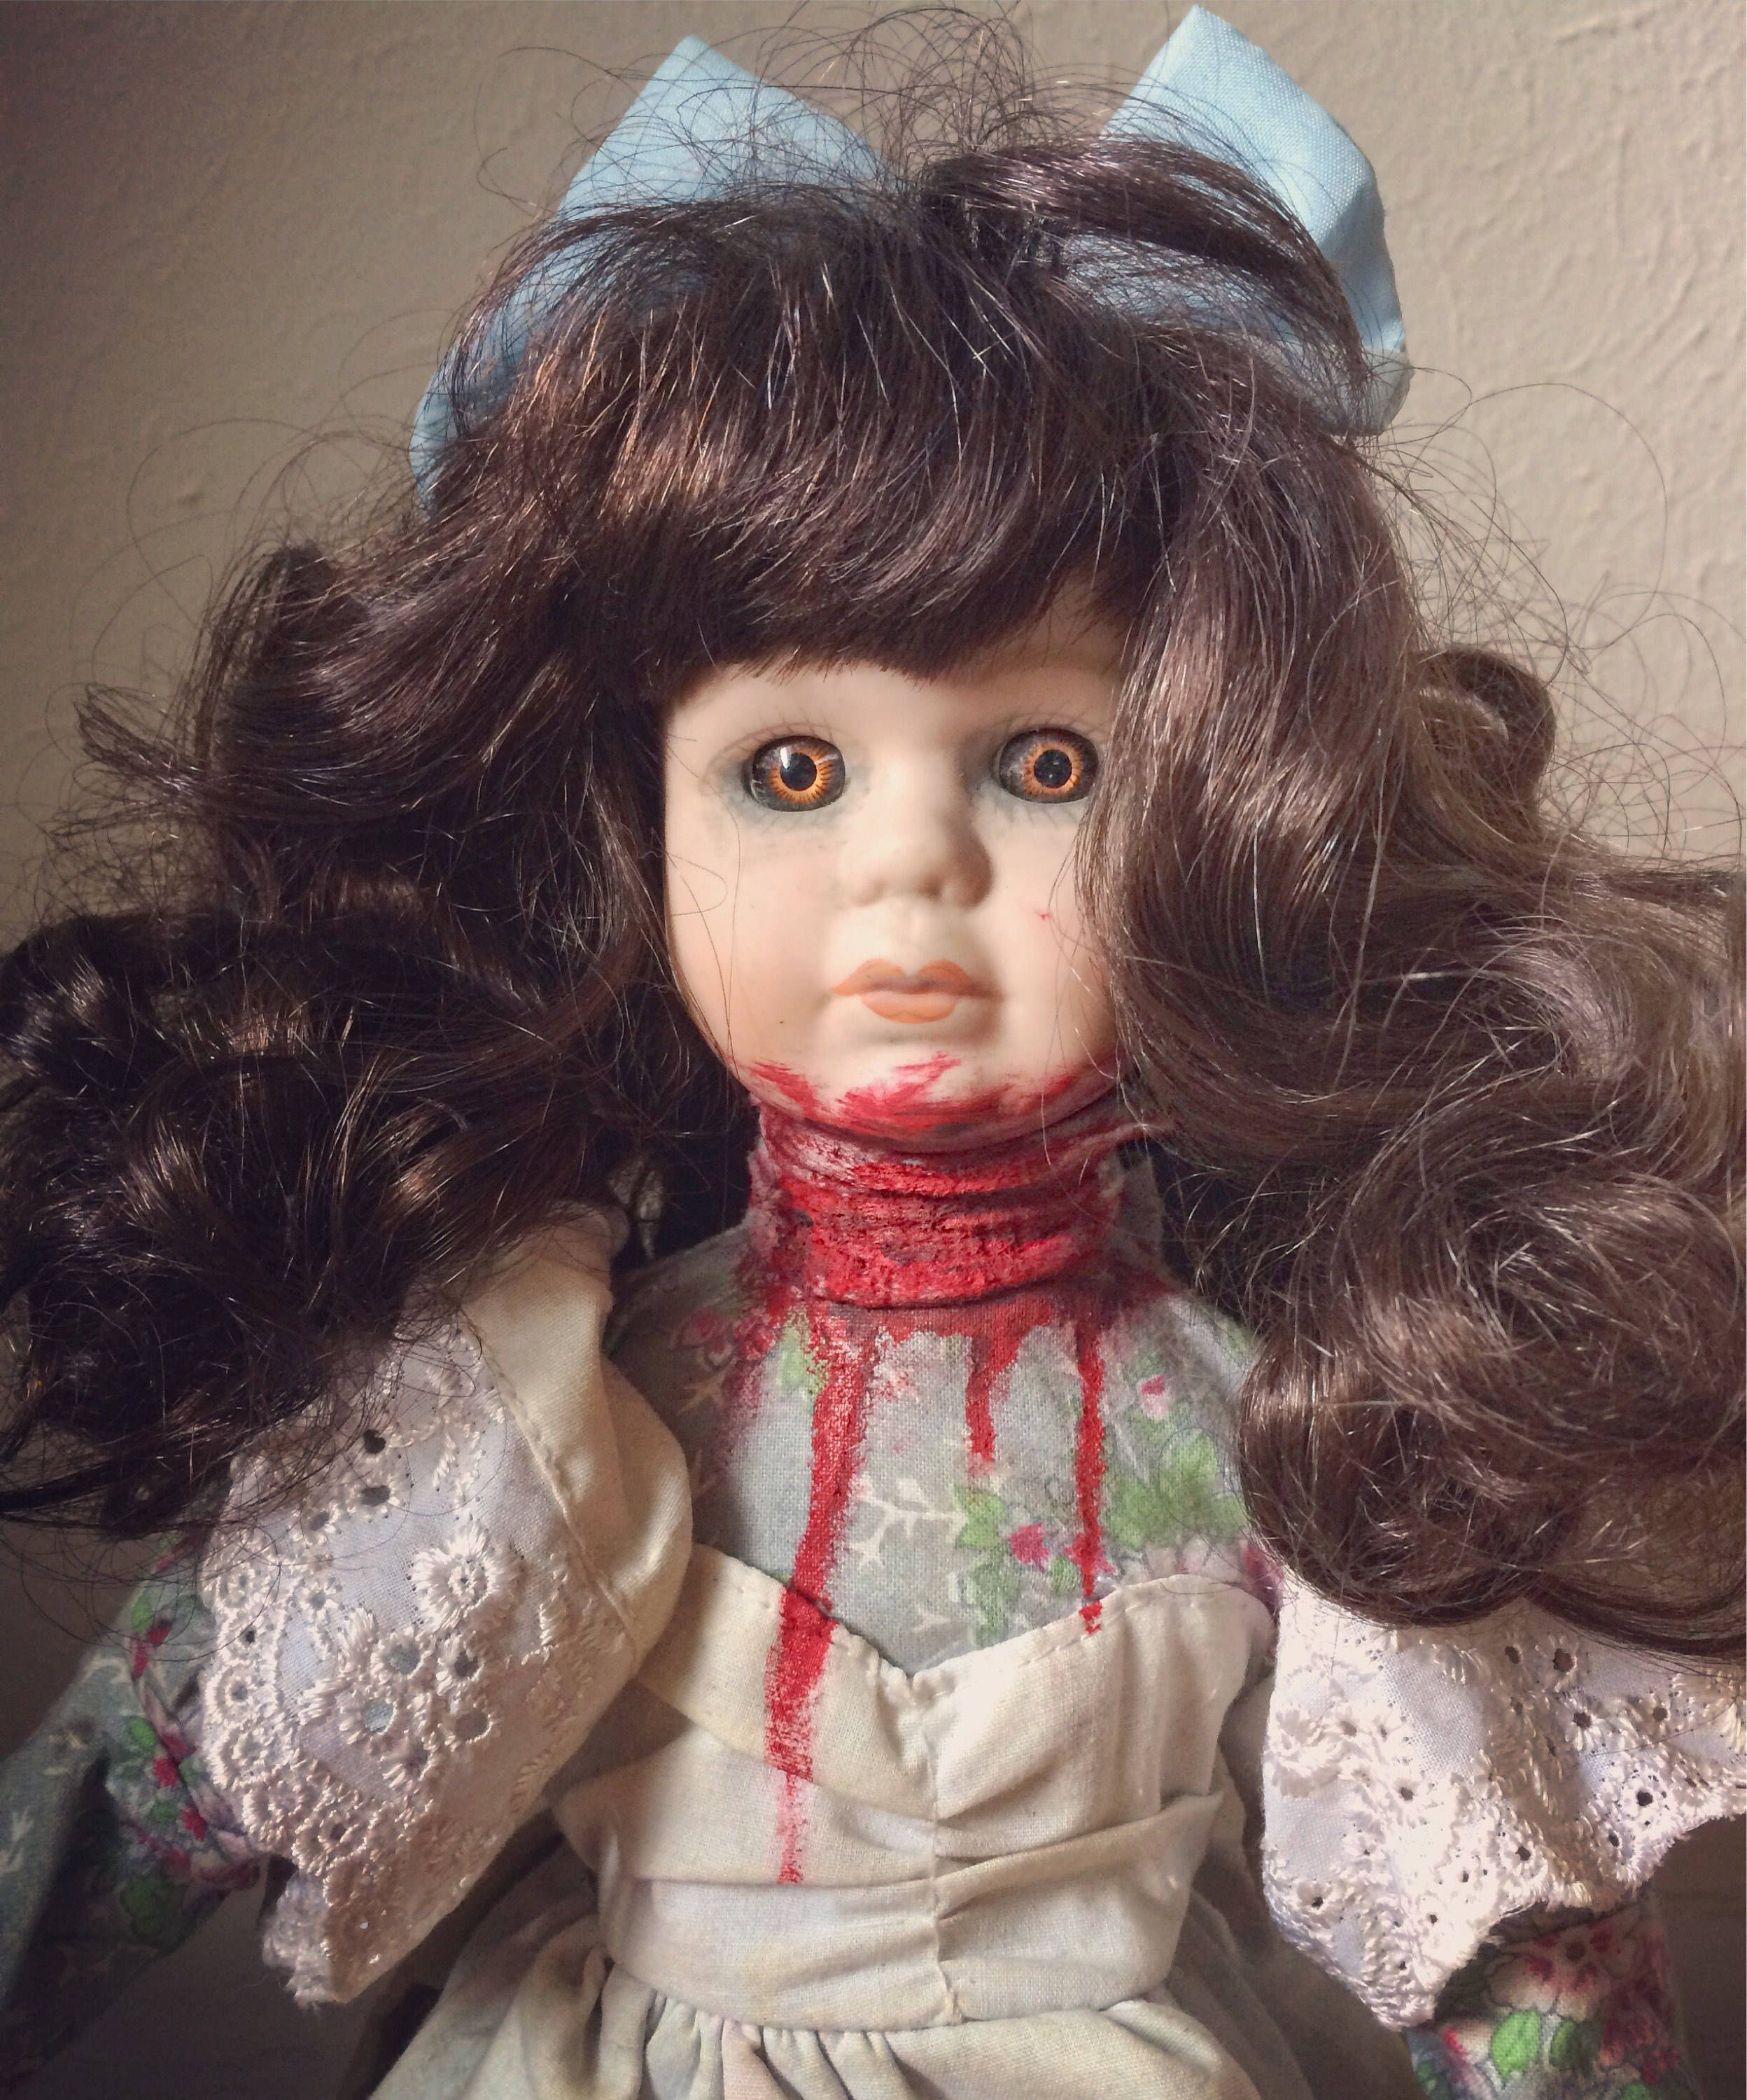 painted doll possessed doll OOAK Doll haunted doll scary doll porcelain doll Halloween doll doll collector Horror Doll